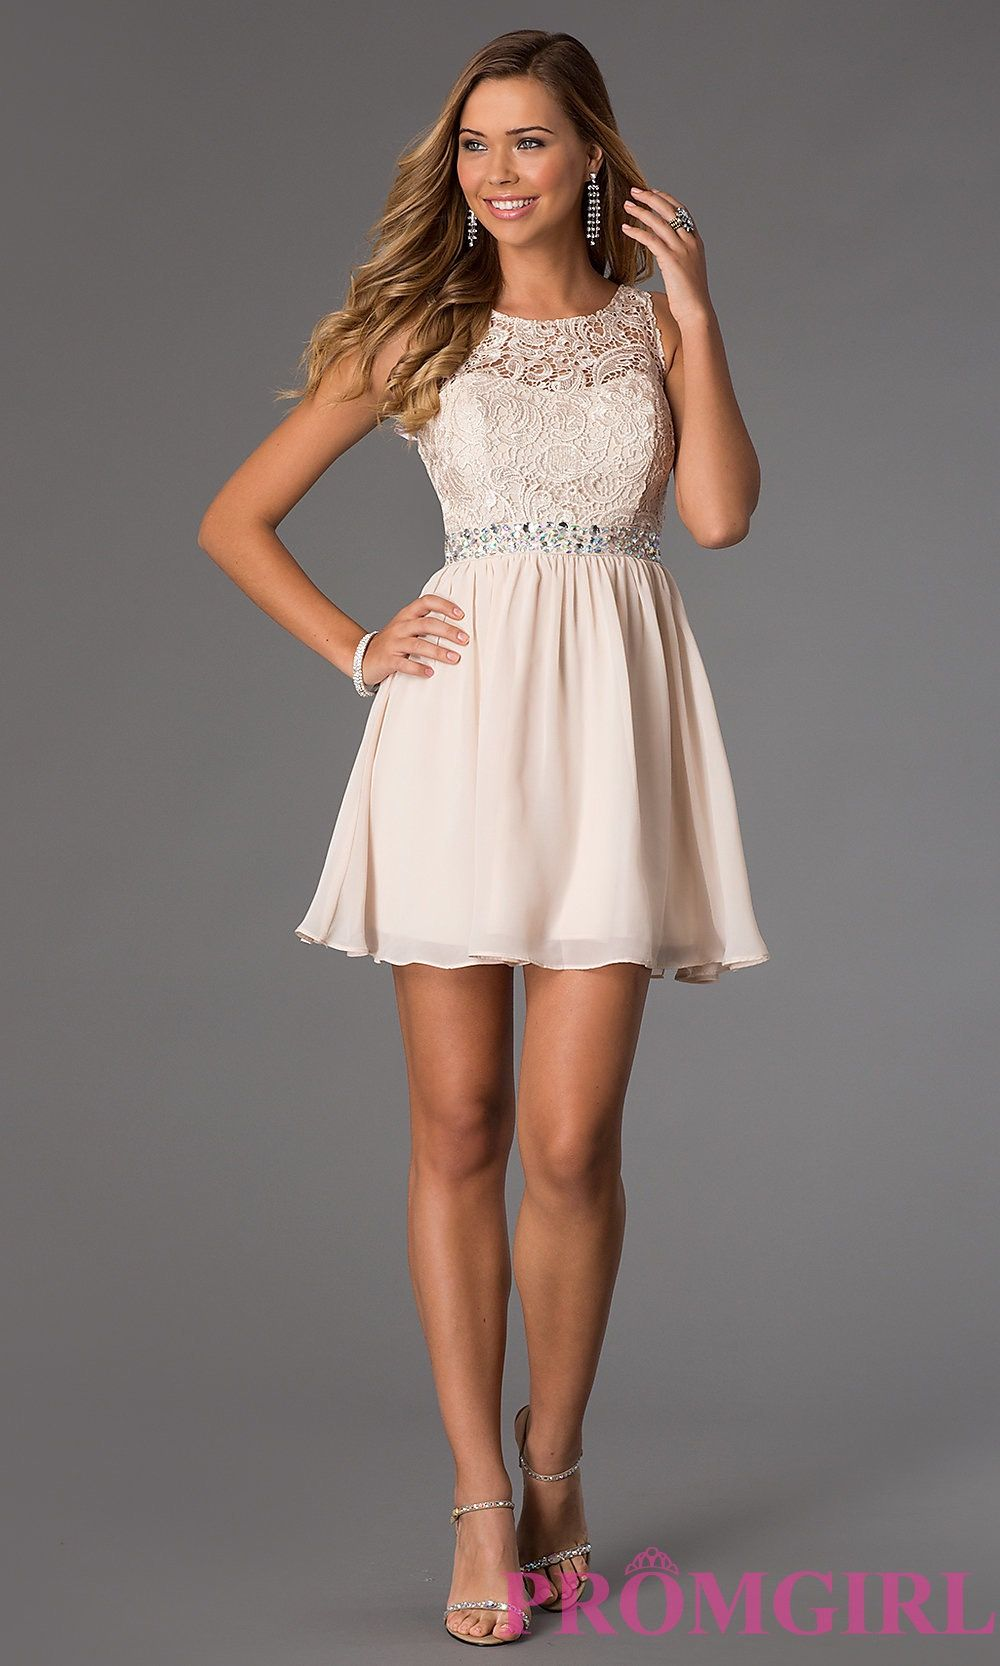 Dressing Up | My Closet | Pinterest | Prom, Homecoming and Formal